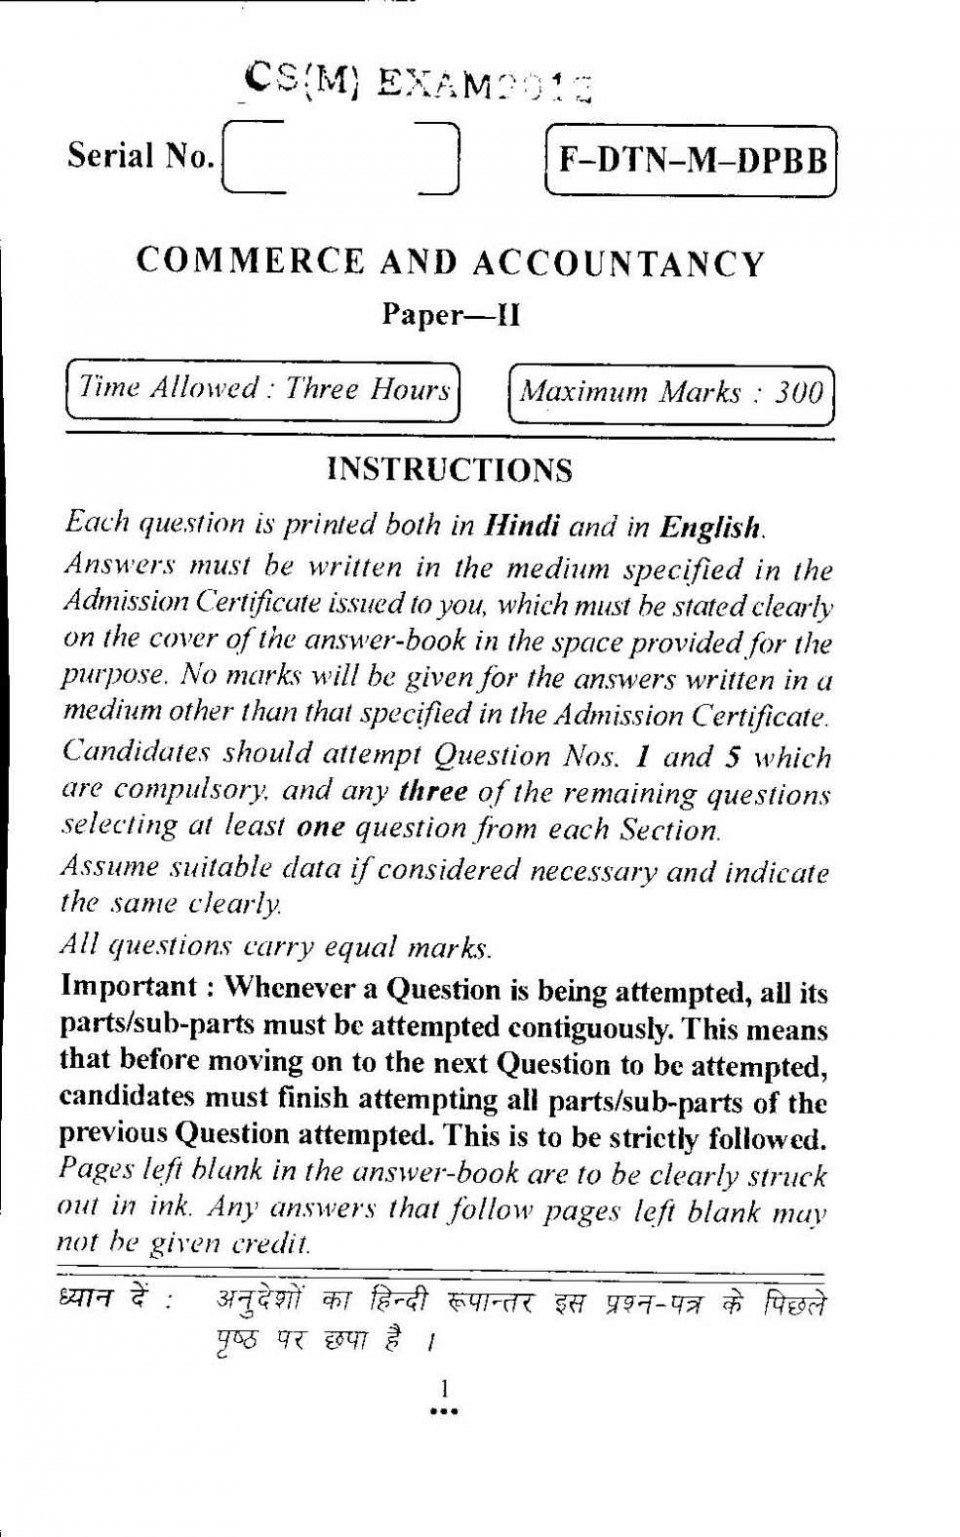 011 Civil Services Examination Commerce And Accountancy Paper Ii Previous Years Que Essay Example Marvelous Racism Conclusion Ideas Hook 960